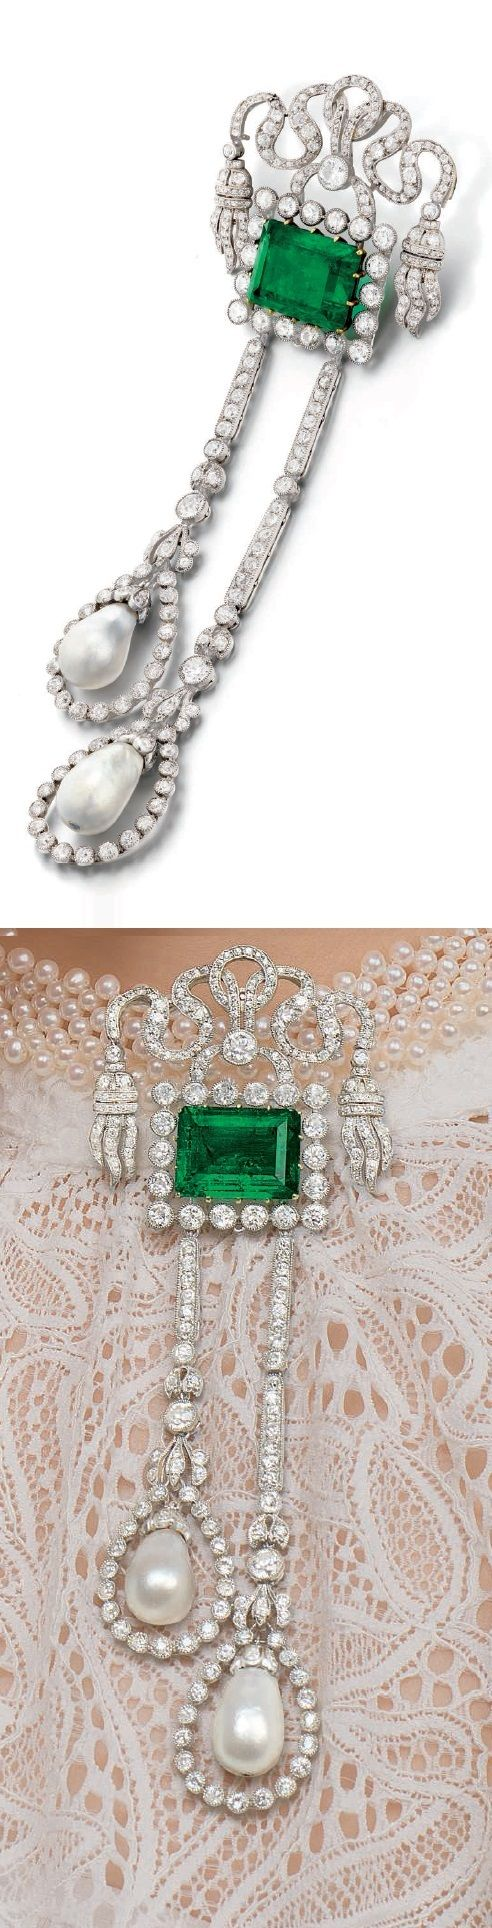 A Belle Epoque Platinum, 18K Yellow Gold, Emerald, Natural Pearl and Diamond Brooch, 1910. With a case signed Janesich, 18 Rue de la Paix, Paris, Monte Carlo. A fine example of a Belle Epoque jewel. The use of undulating ribbons, articulated tassels, natural pearl pendants, and millegrain-set diamonds centring upon an impressive emerald, is reminiscent of the naturalistic elegance of the period. A rare surviving example of what came to be known as the Golden Age of 20th C France